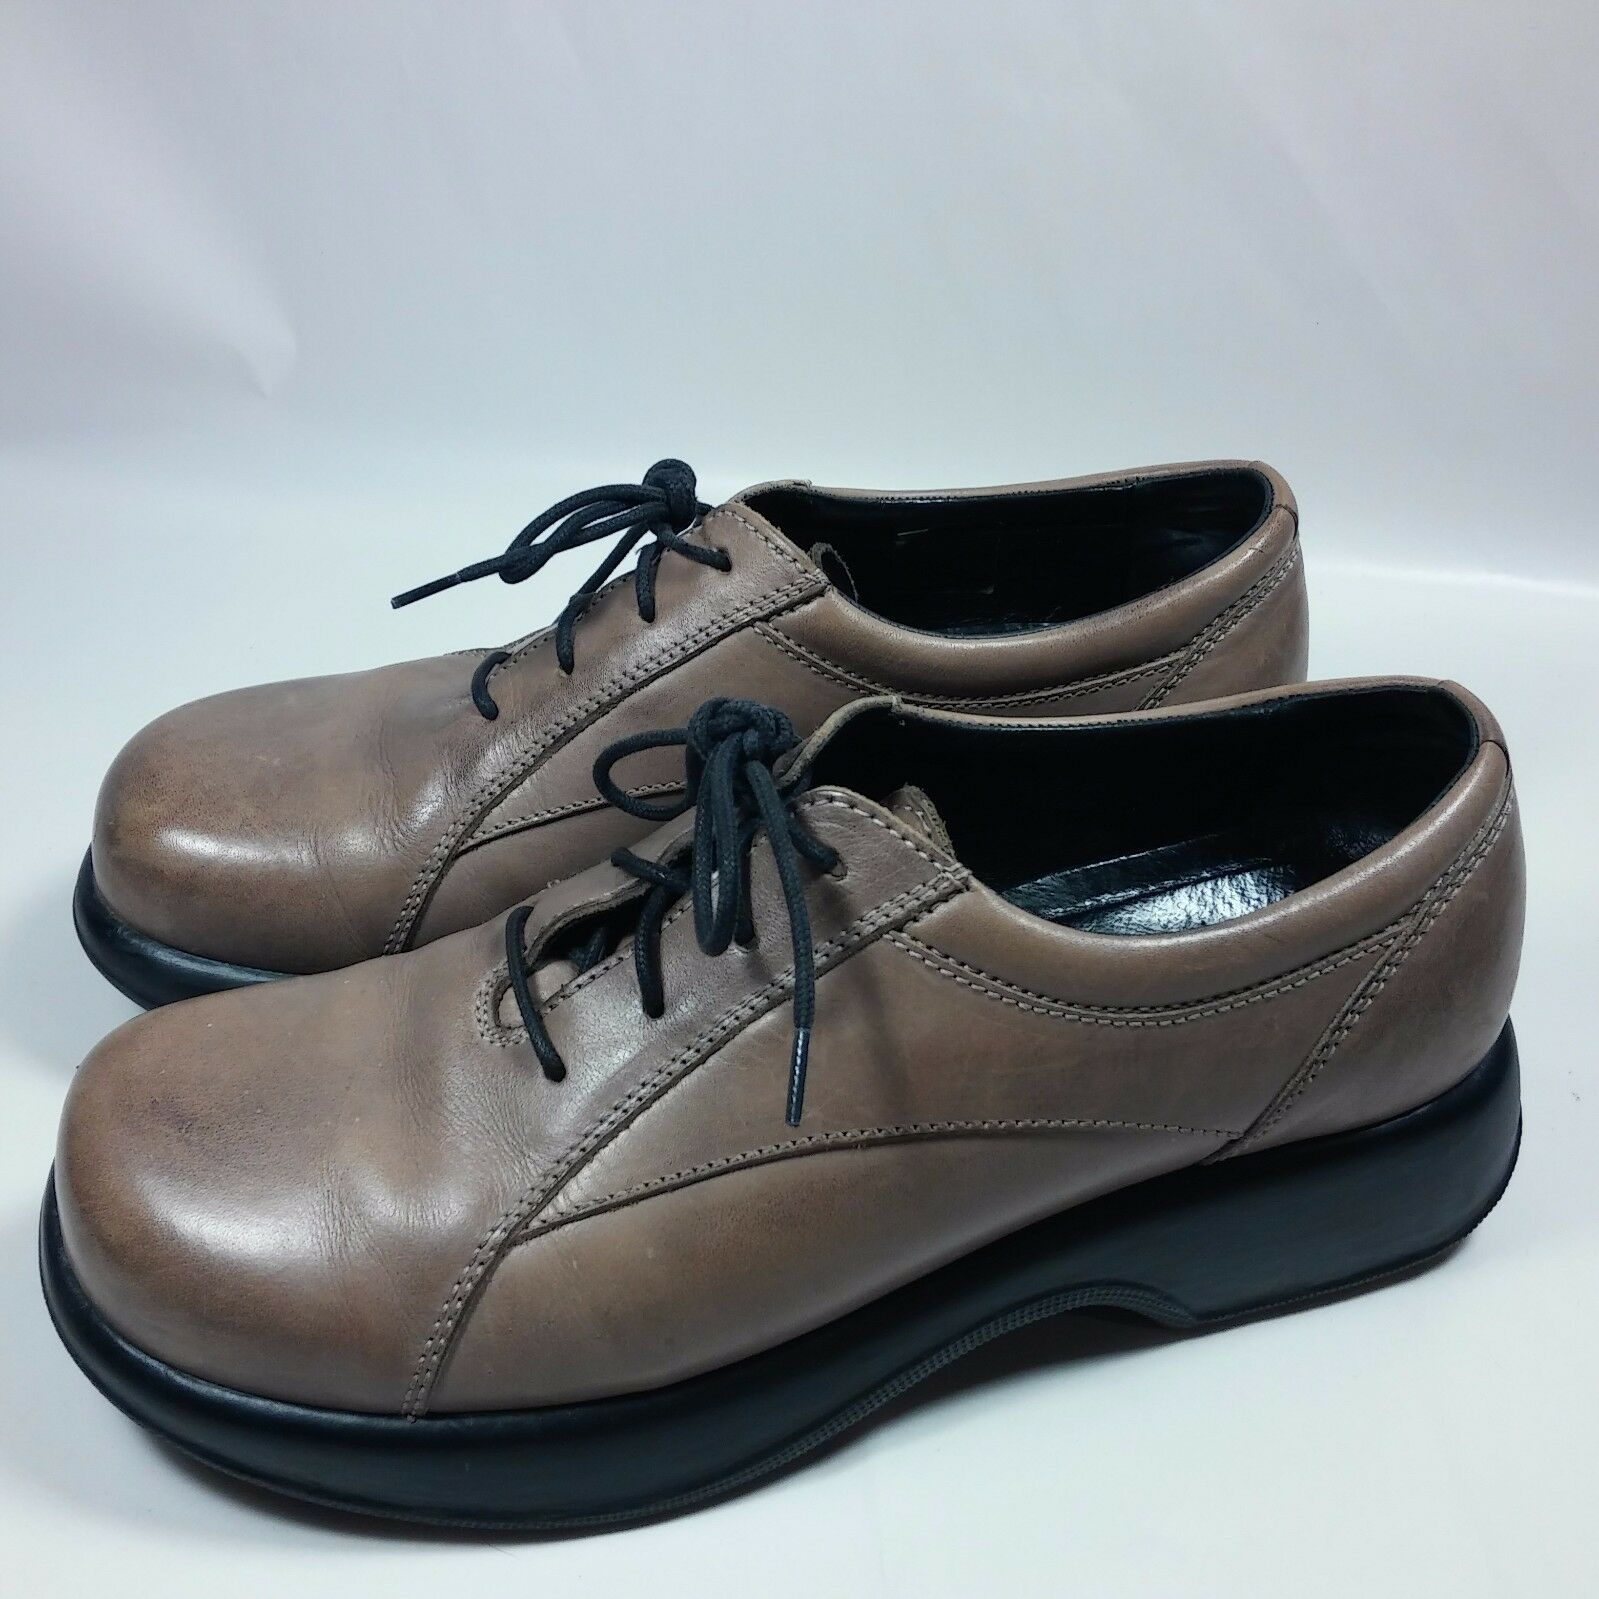 Women's Dansko Brown Oxfords Leather shoes Comfort Walking-EU 41-US 10.5 11